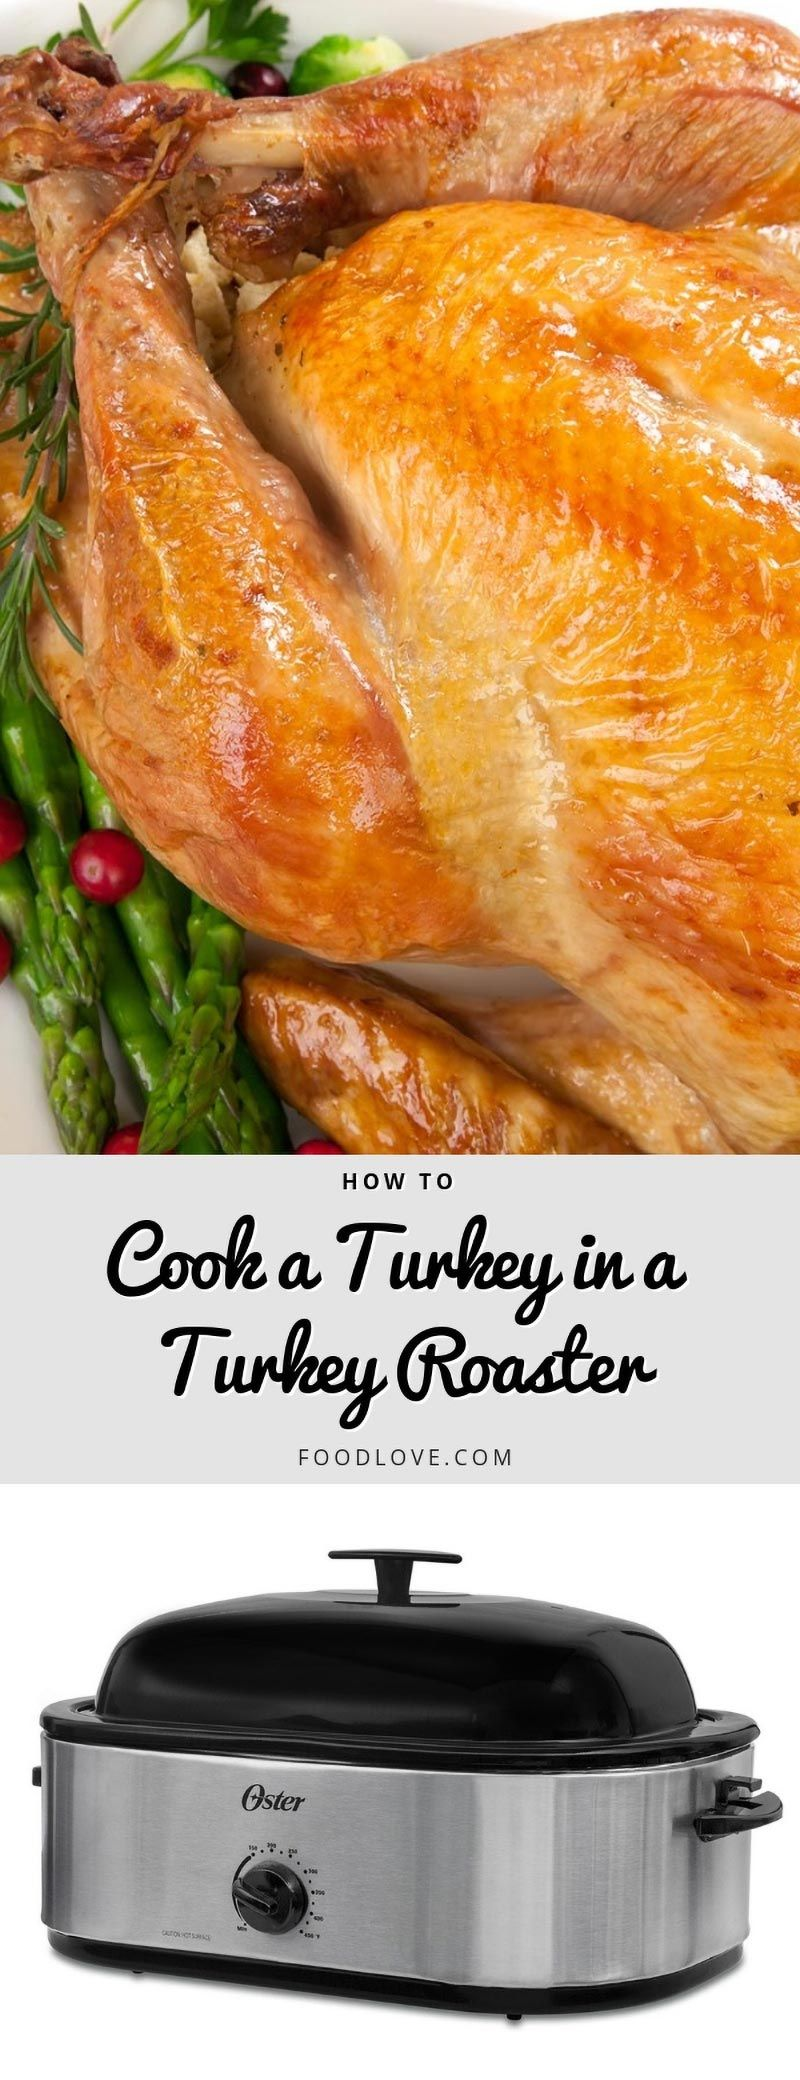 Photo of How To: Cook a Turkey in a Turkey Roaster | FoodLove.com